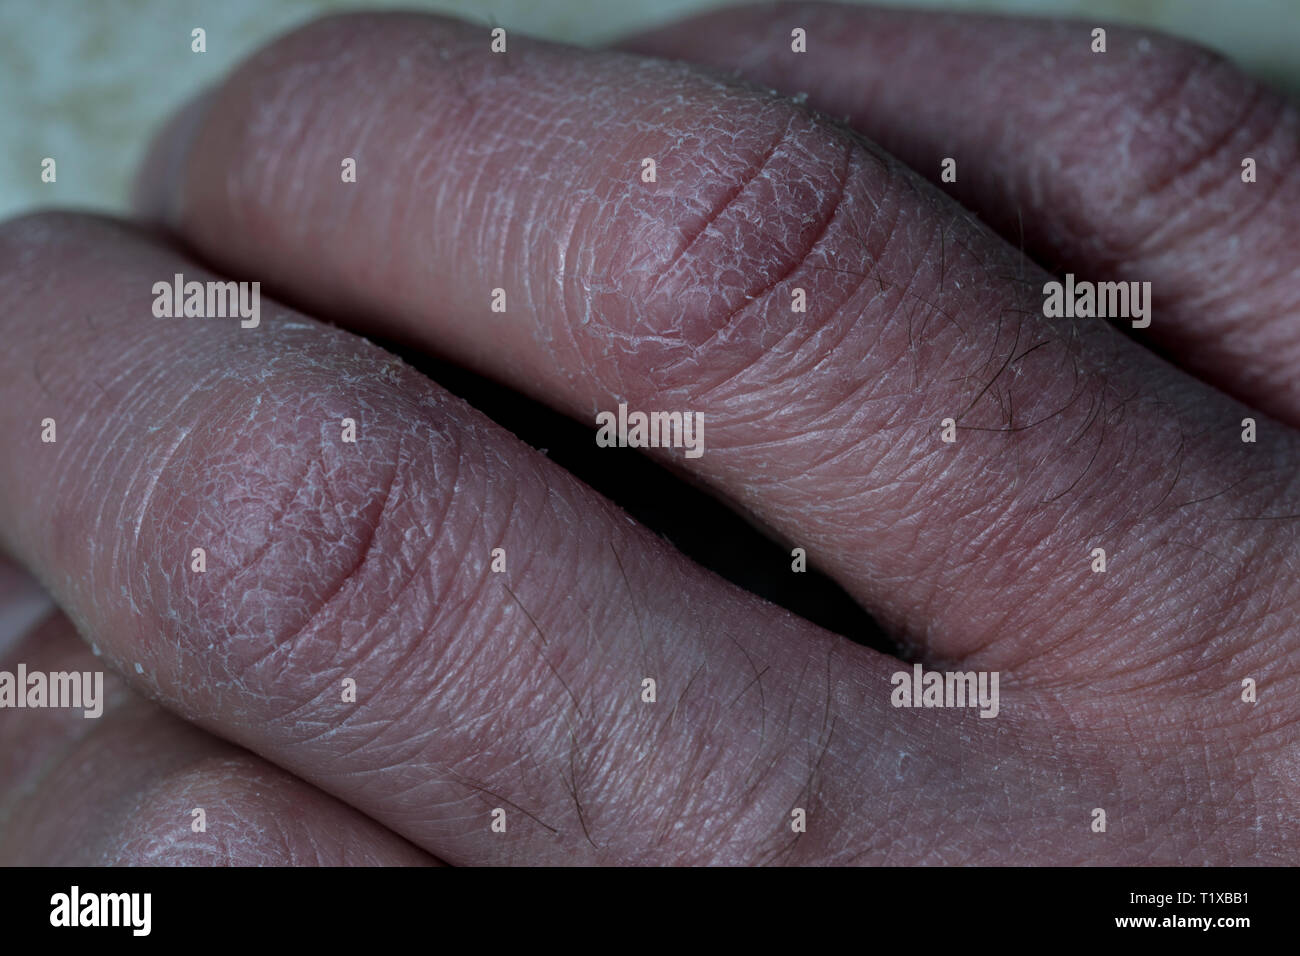 Fingers Close Up With Dry Skin Cracked White Dry Skin Damaged By Eczema Fingers Close Up Human Hands With Dry Skin Stock Photo Alamy